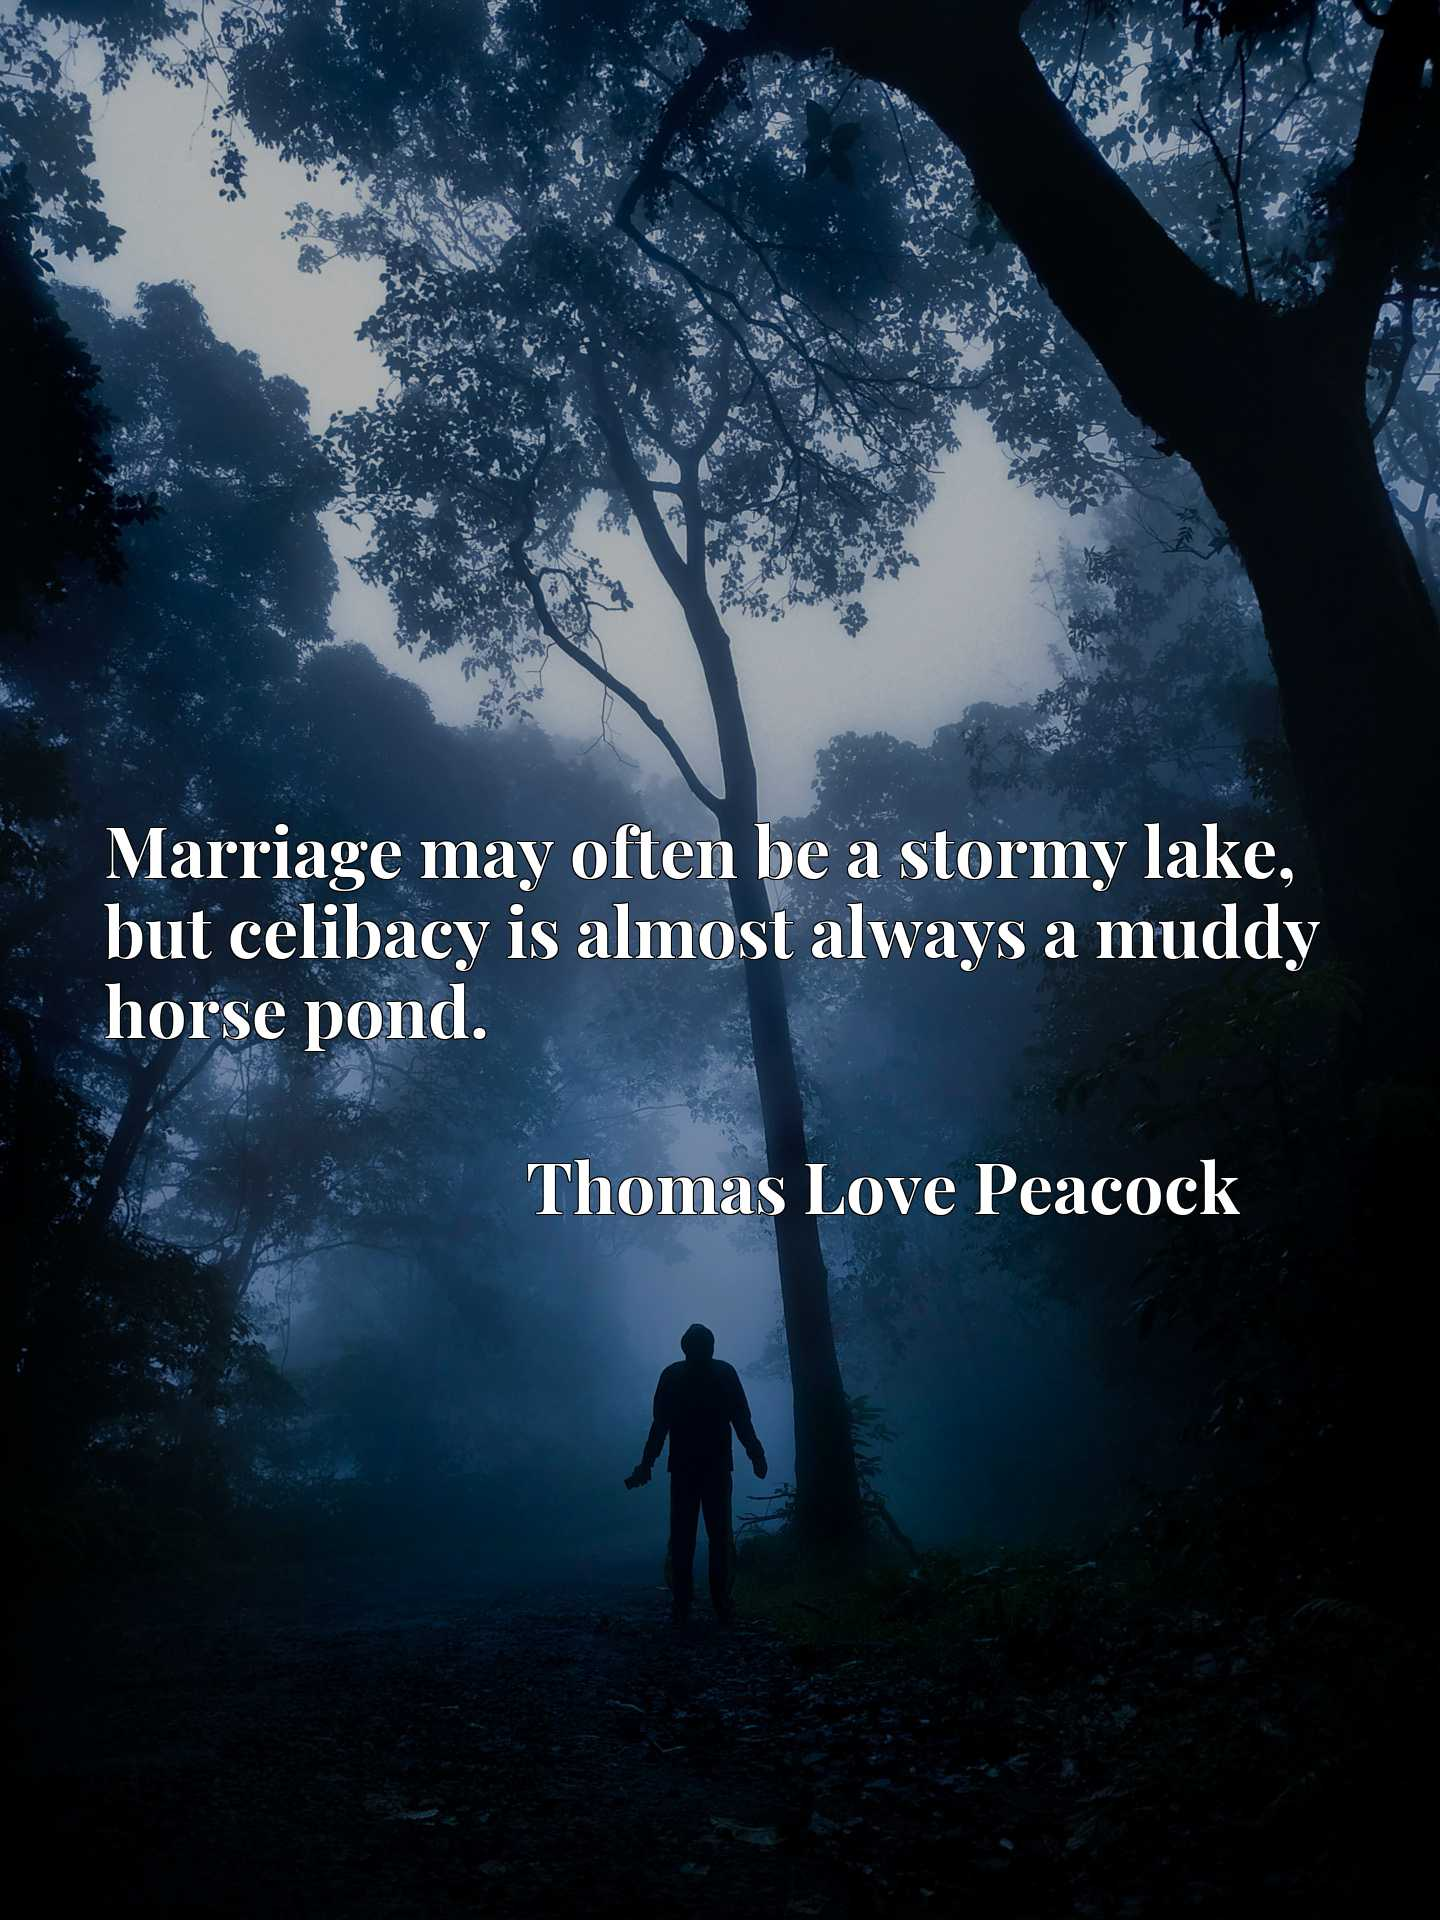 Marriage may often be a stormy lake, but celibacy is almost always a muddy horse pond.